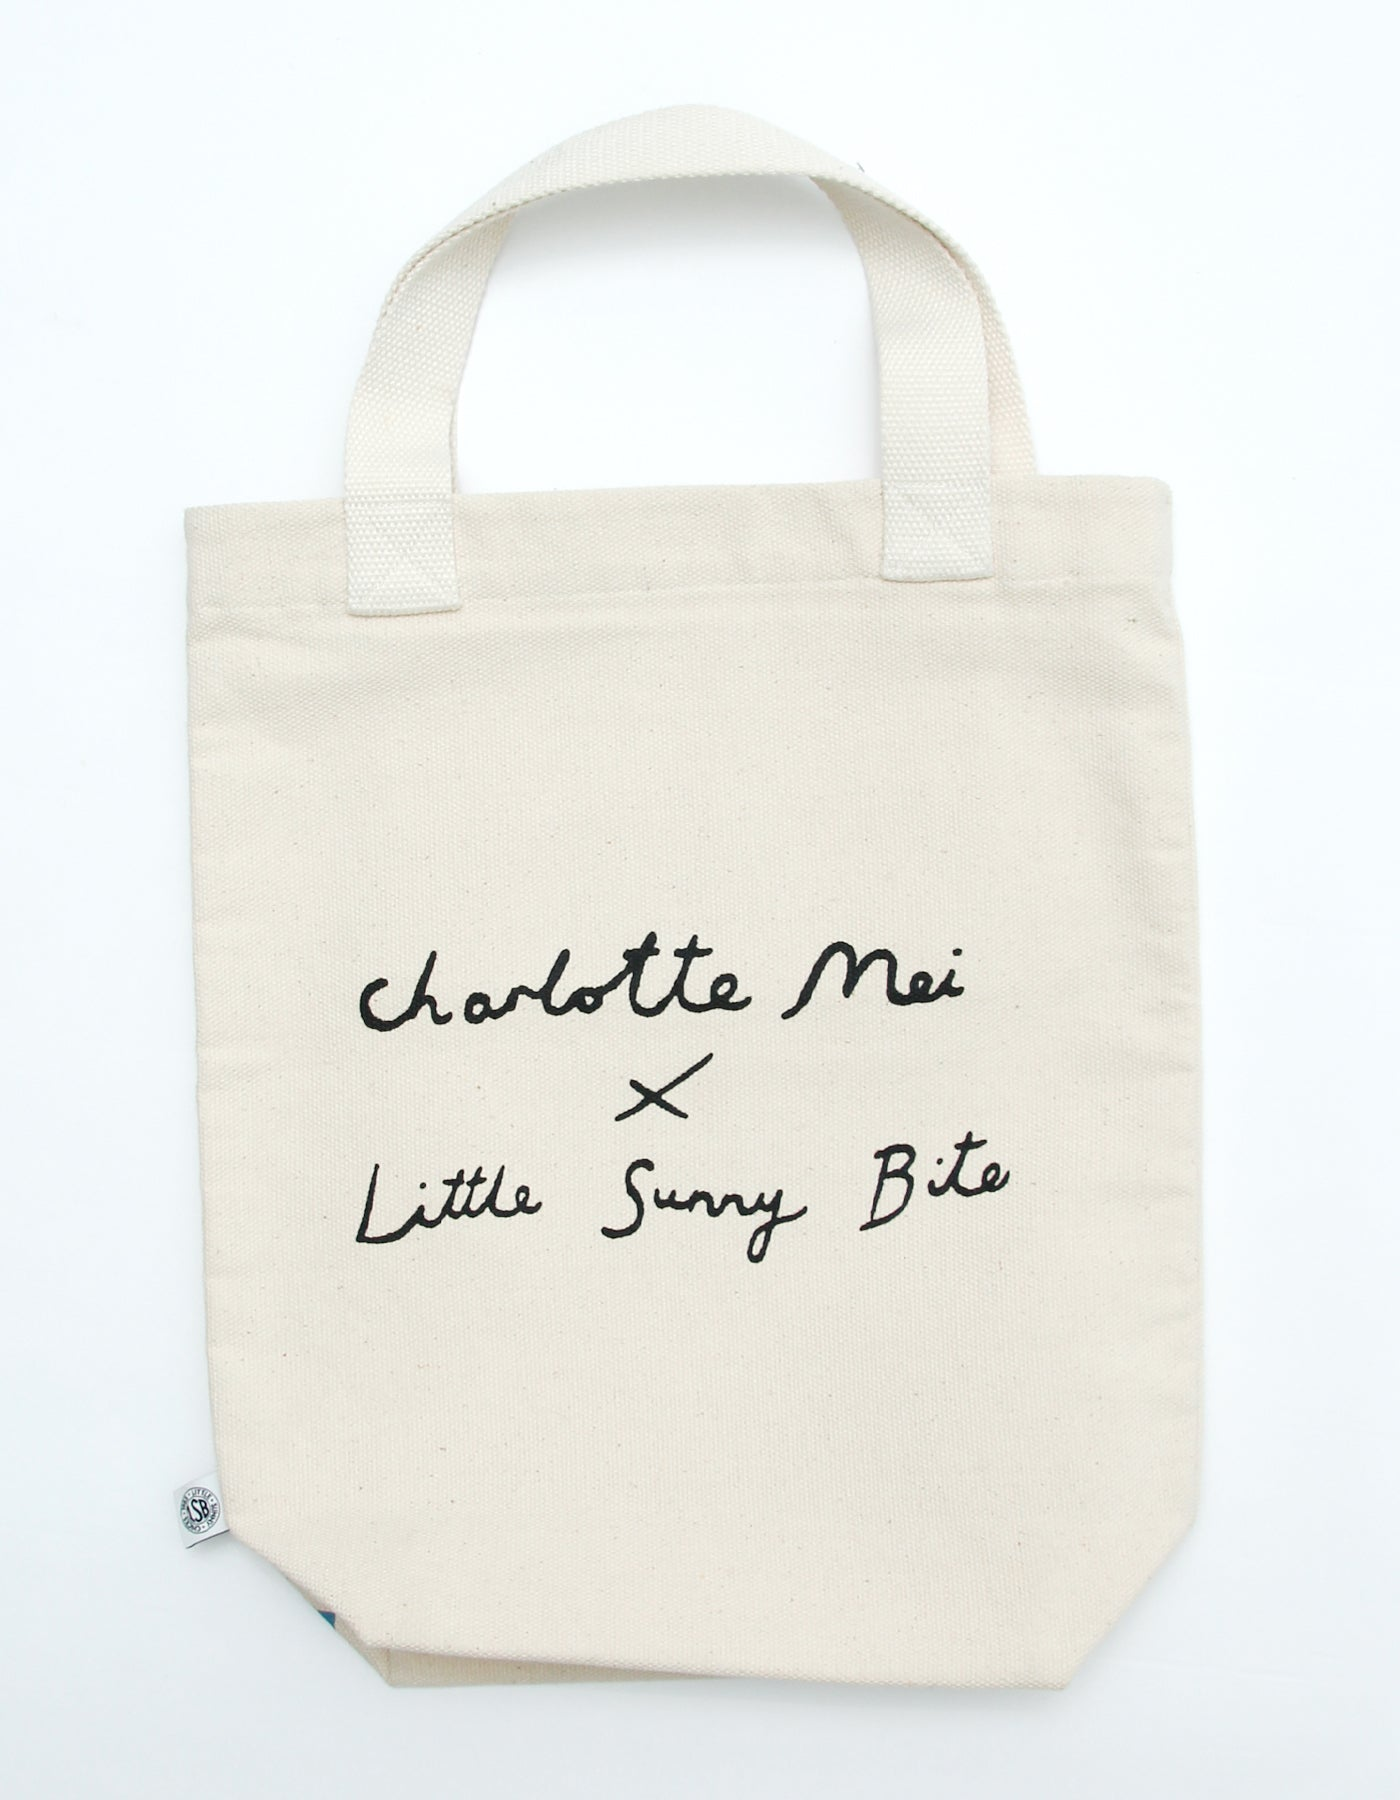 Charlotte mei x little sunny bite little girl tote bag / NATURAL